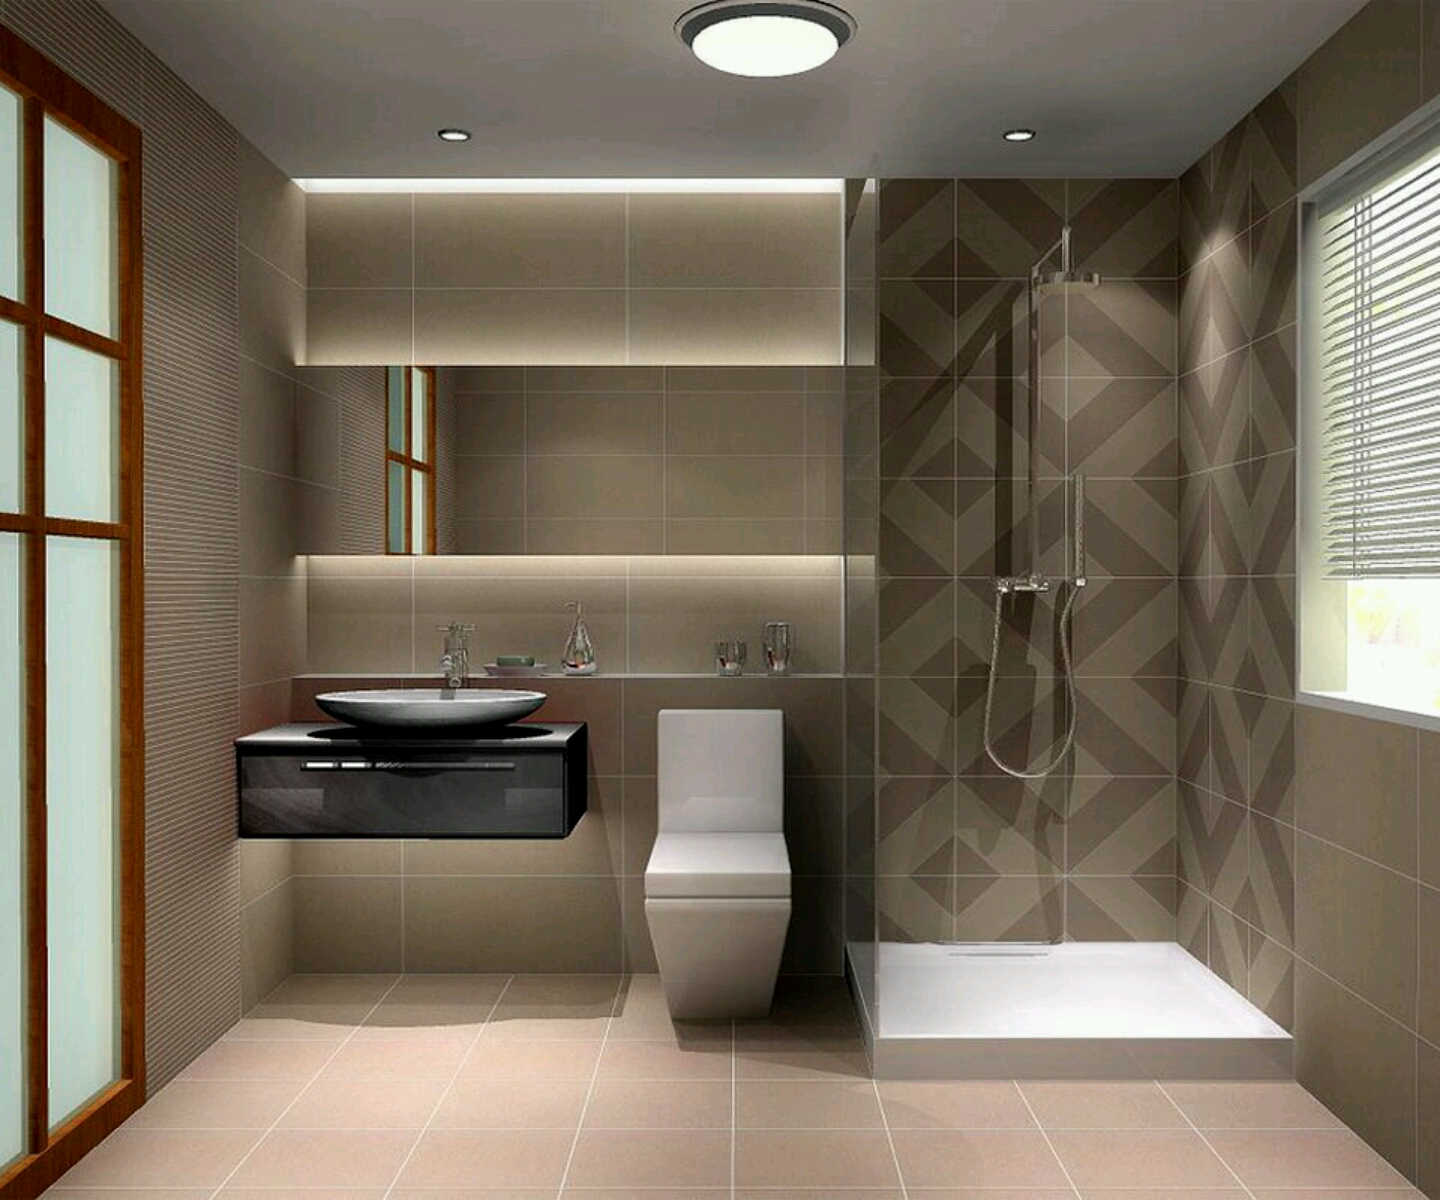 Small modern bathroom design 2017 grasscloth wallpaper Contemporary bathrooms